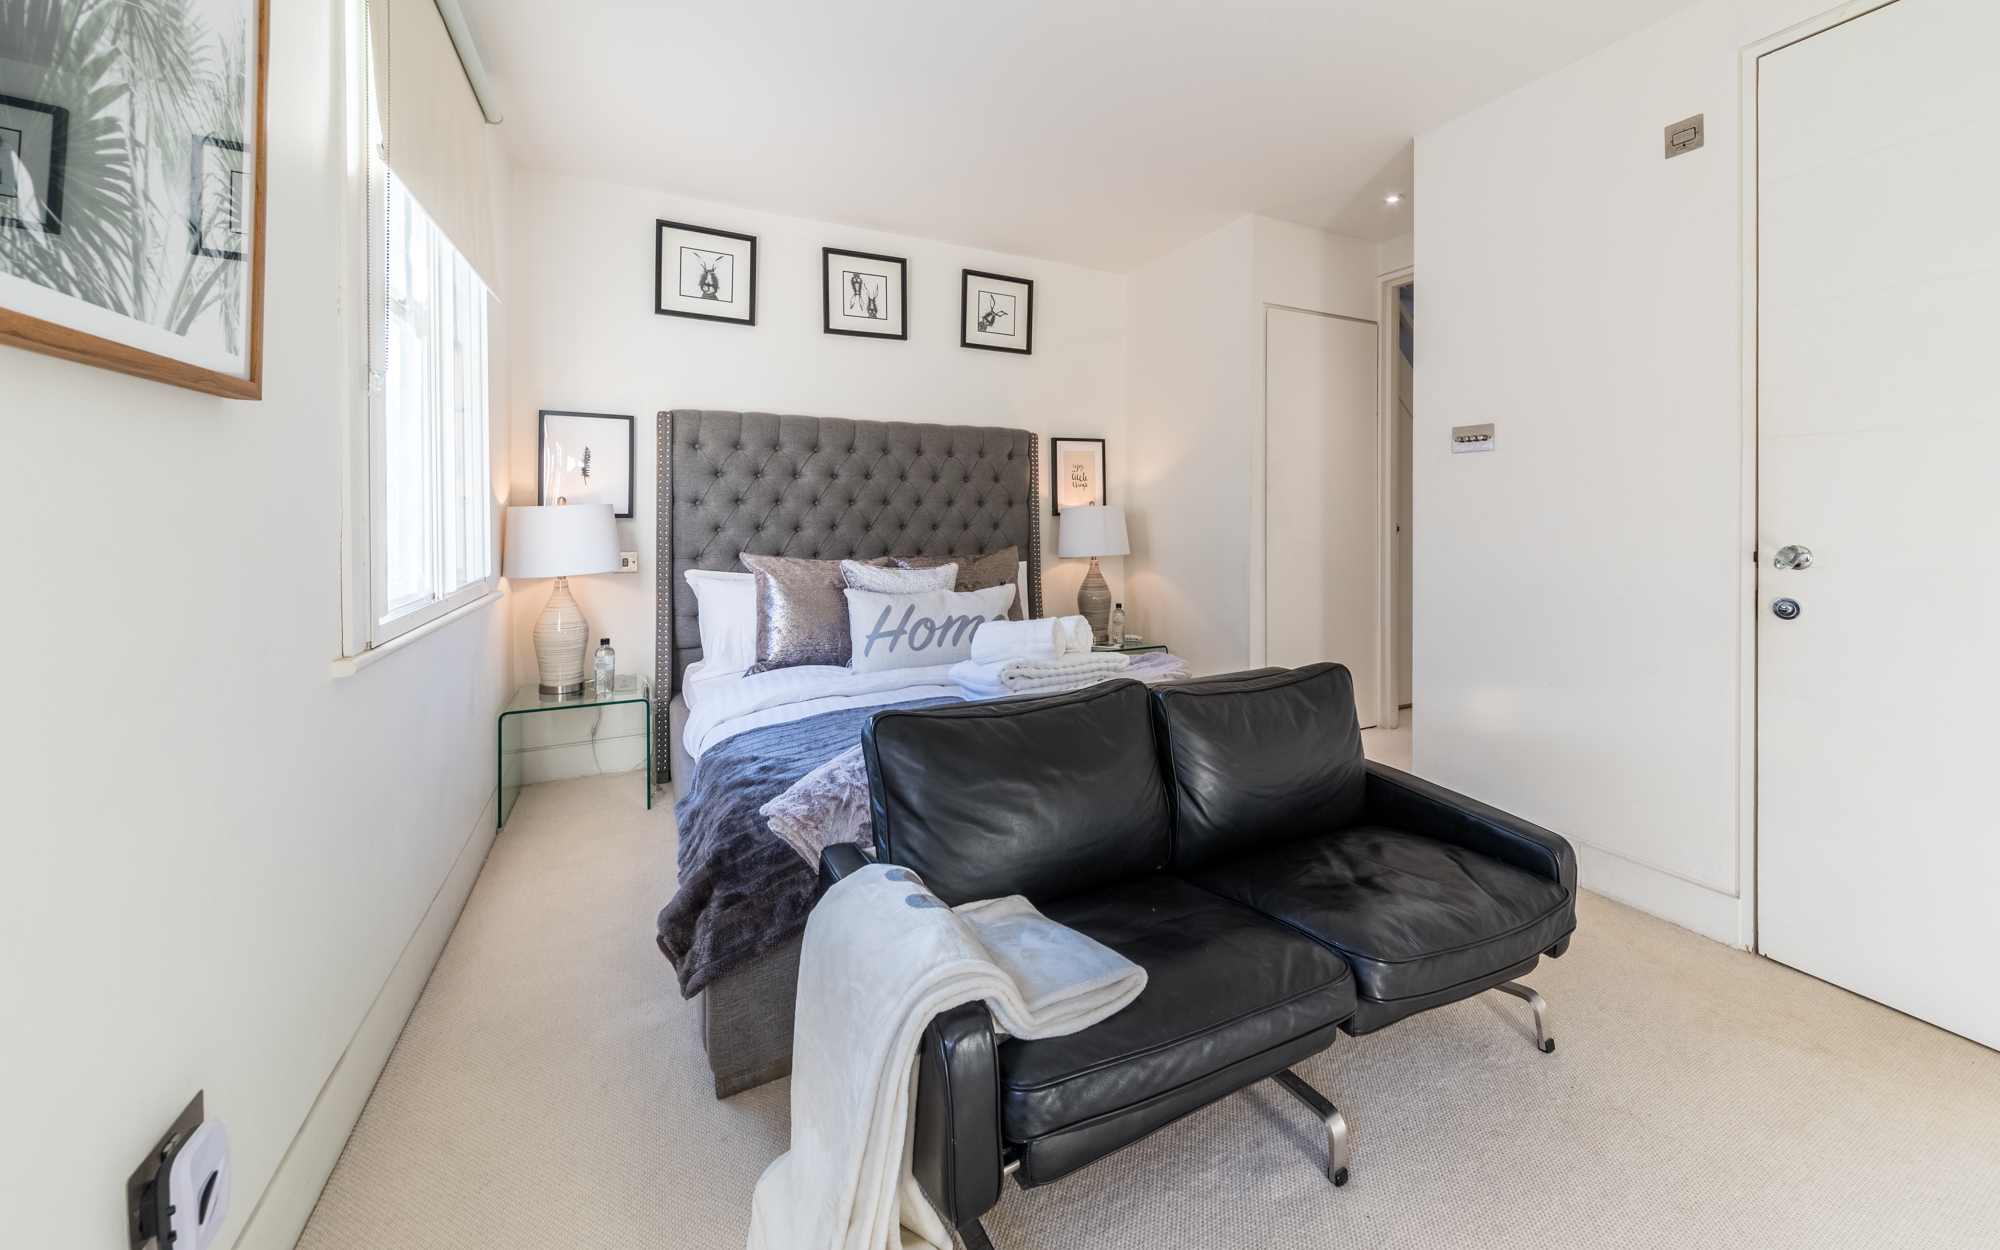 Lovelydays luxury service apartment rental - London - Fitzrovia - Foley Street II - Lovelysuite - 2 bedrooms - 2 bathrooms - Double bed - 77155e756259 - Lovelydays